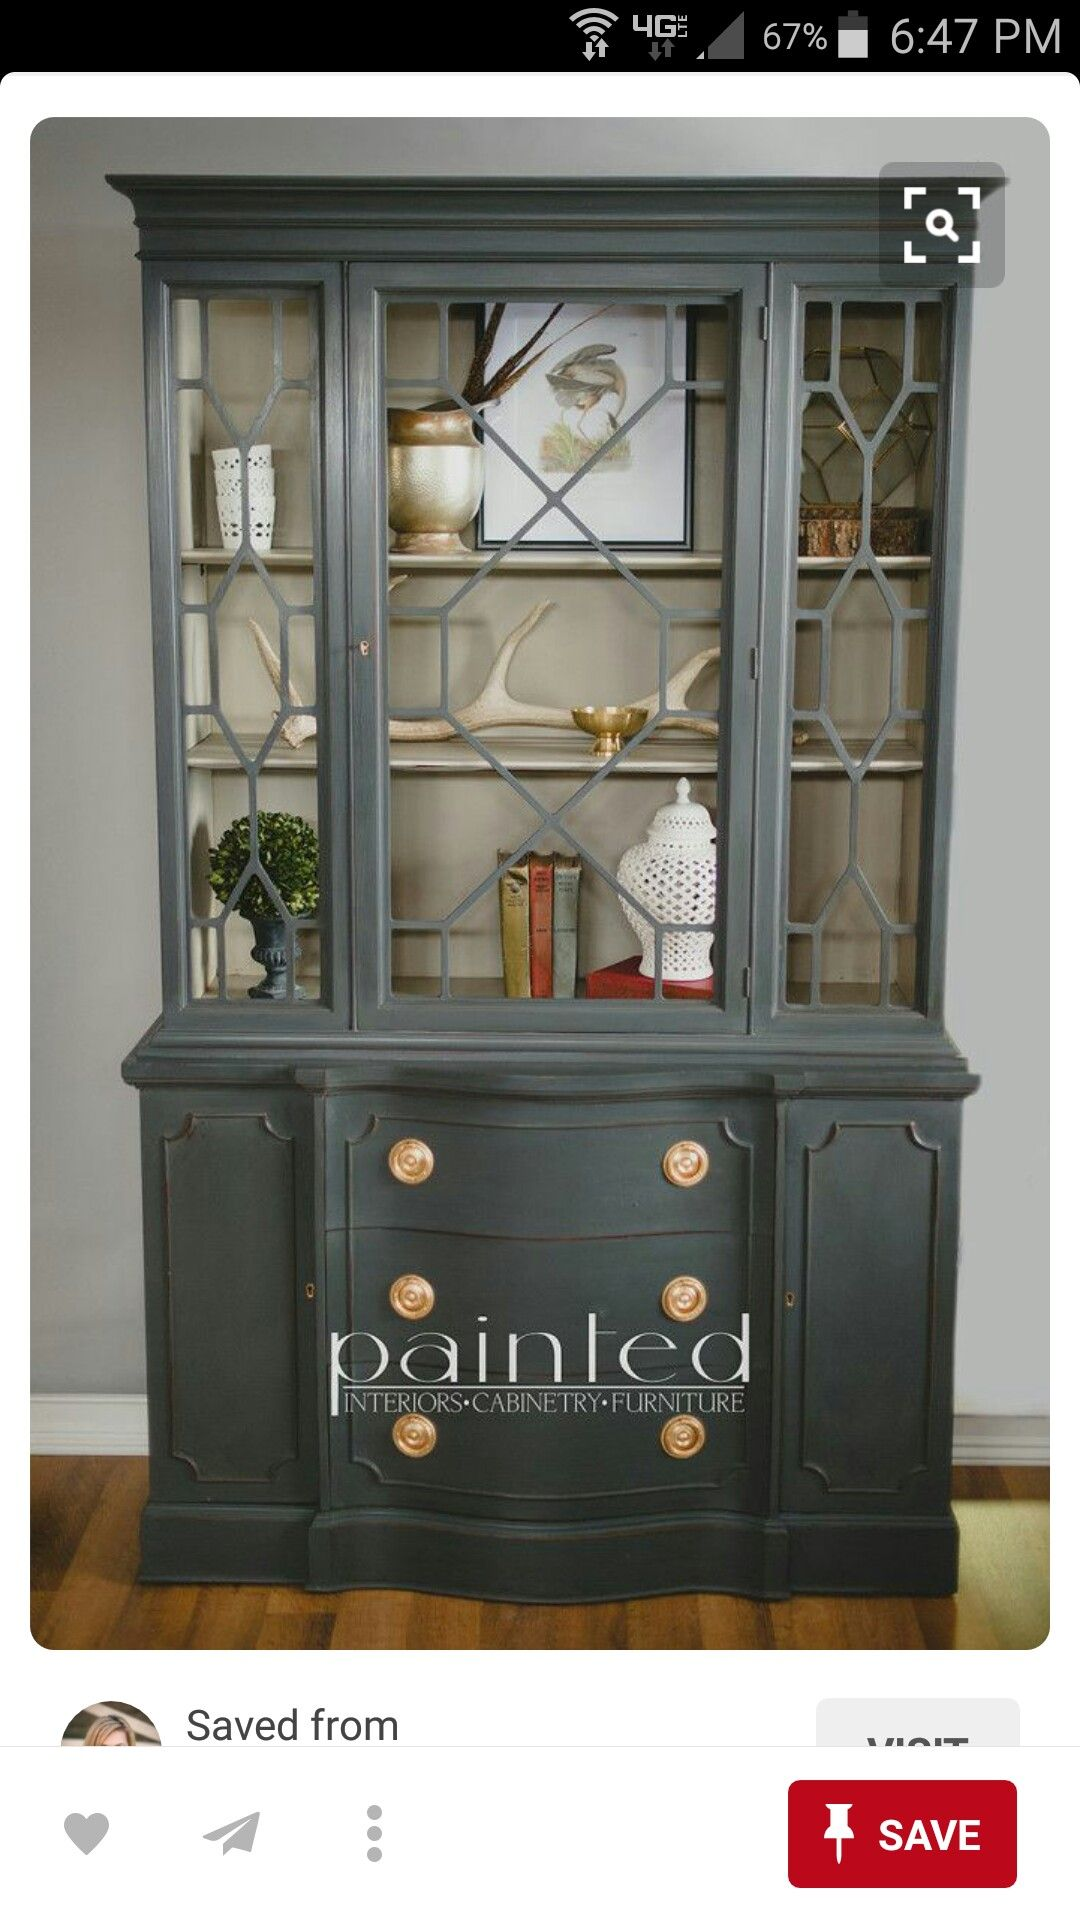 Pin By Natalie Neill On Decorating Ideas Painted China Cabinets Antique China Cabinets Painted Furniture